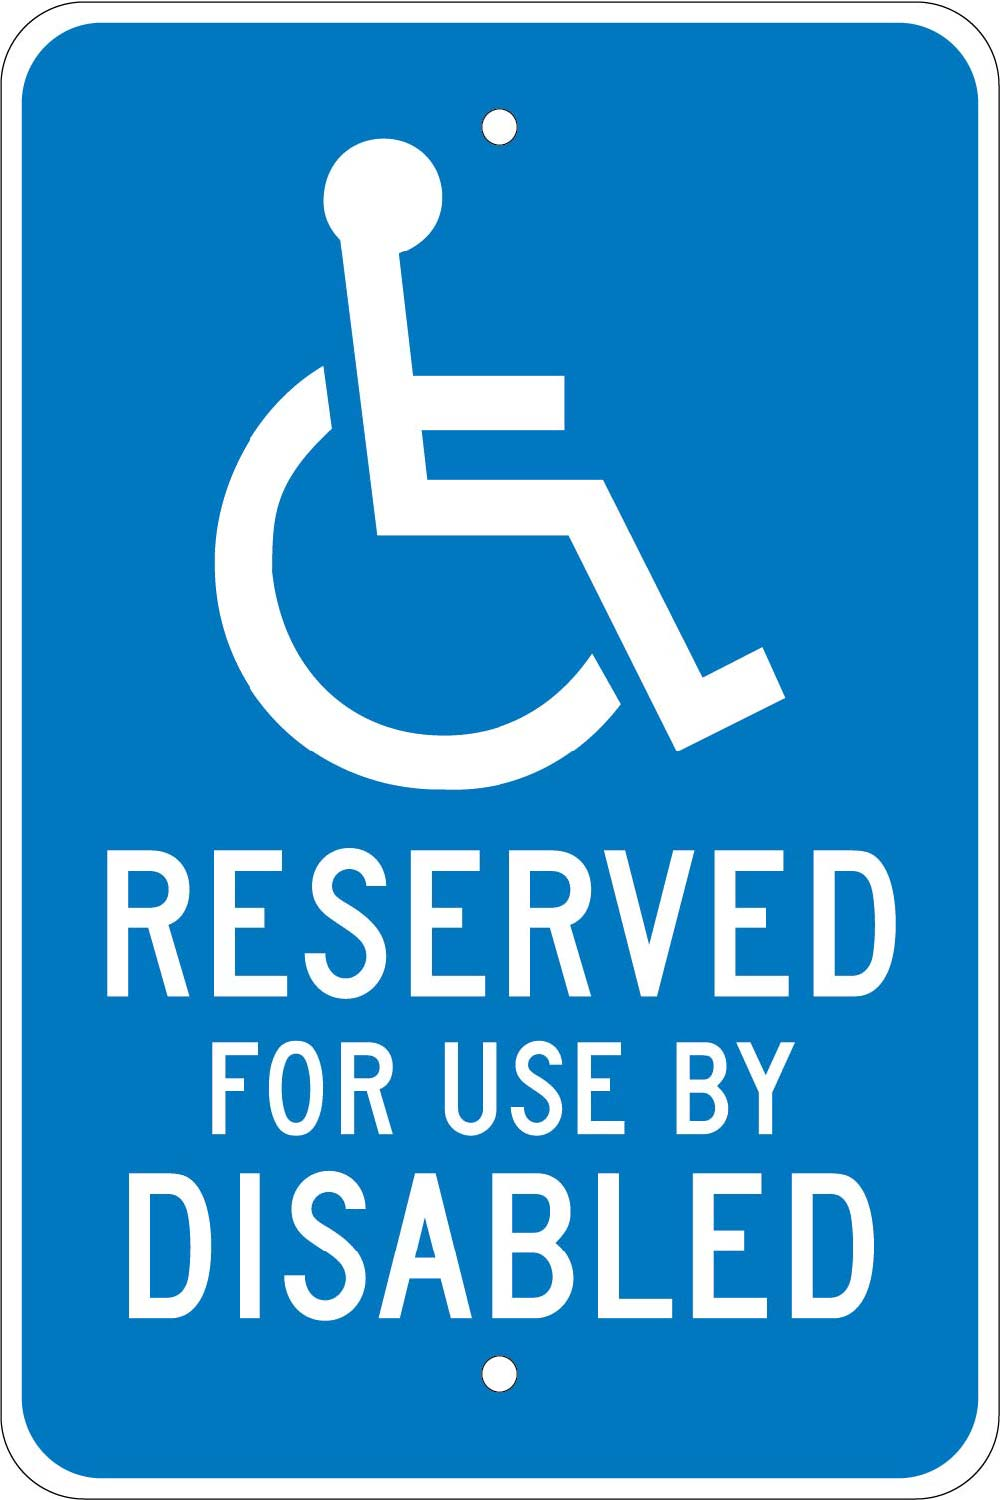 Reserved For Use By Disabled Traffic Sign